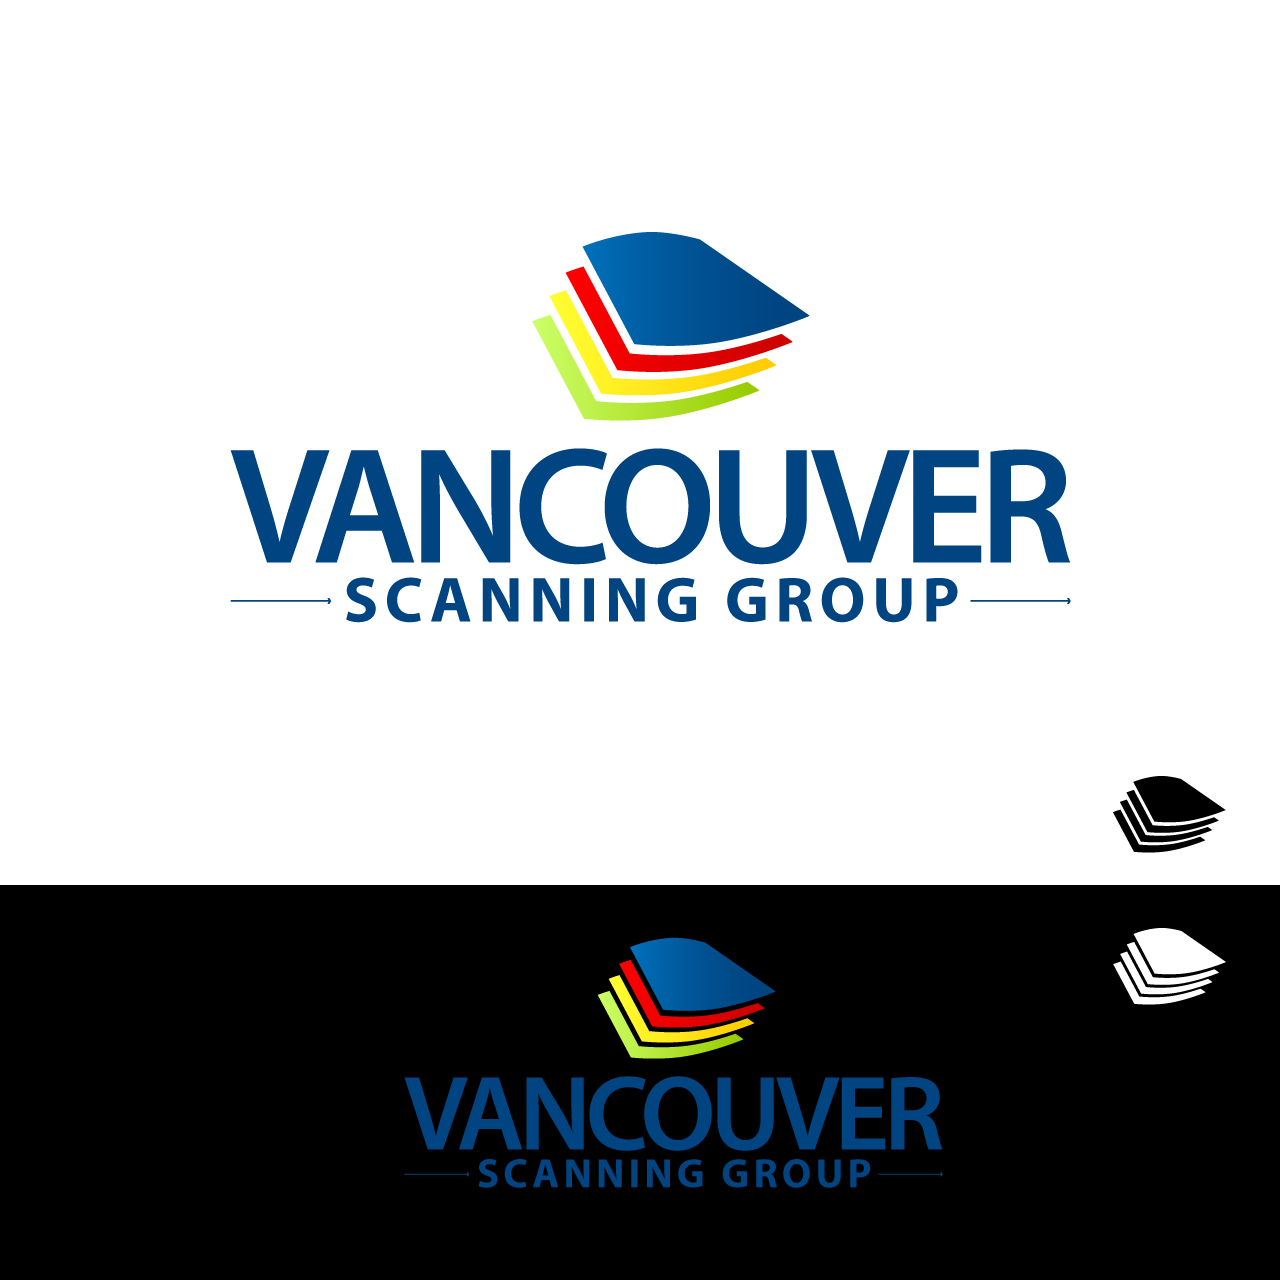 Logo Design by umxca - Entry No. 84 in the Logo Design Contest Vancouver Scanning Group.